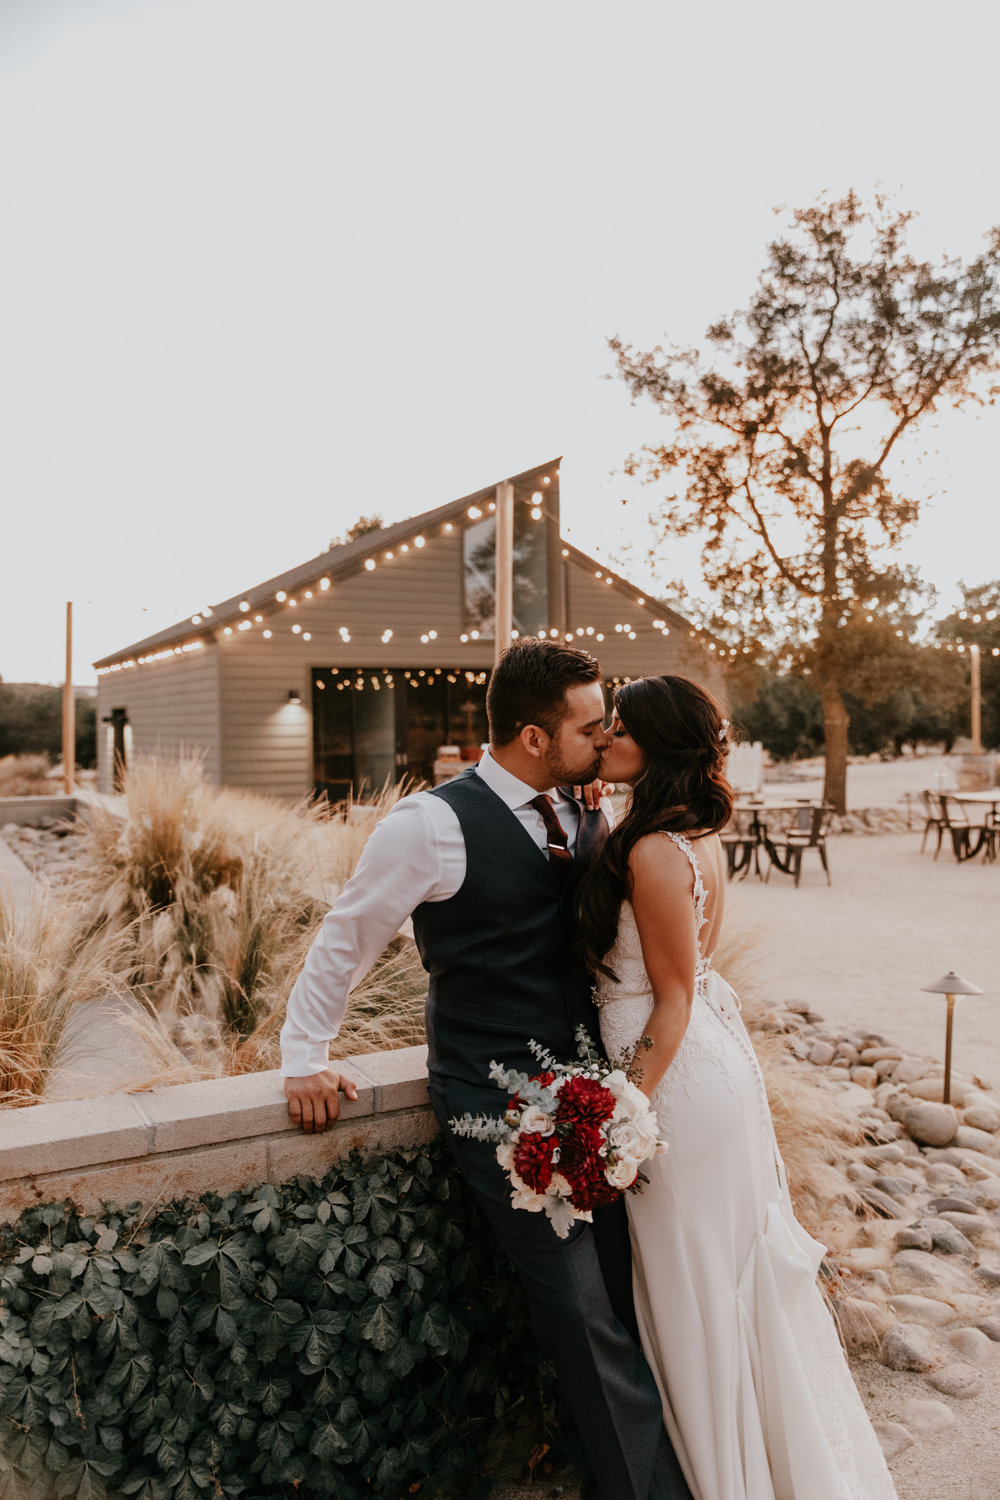 Rustic weddings in the videyards